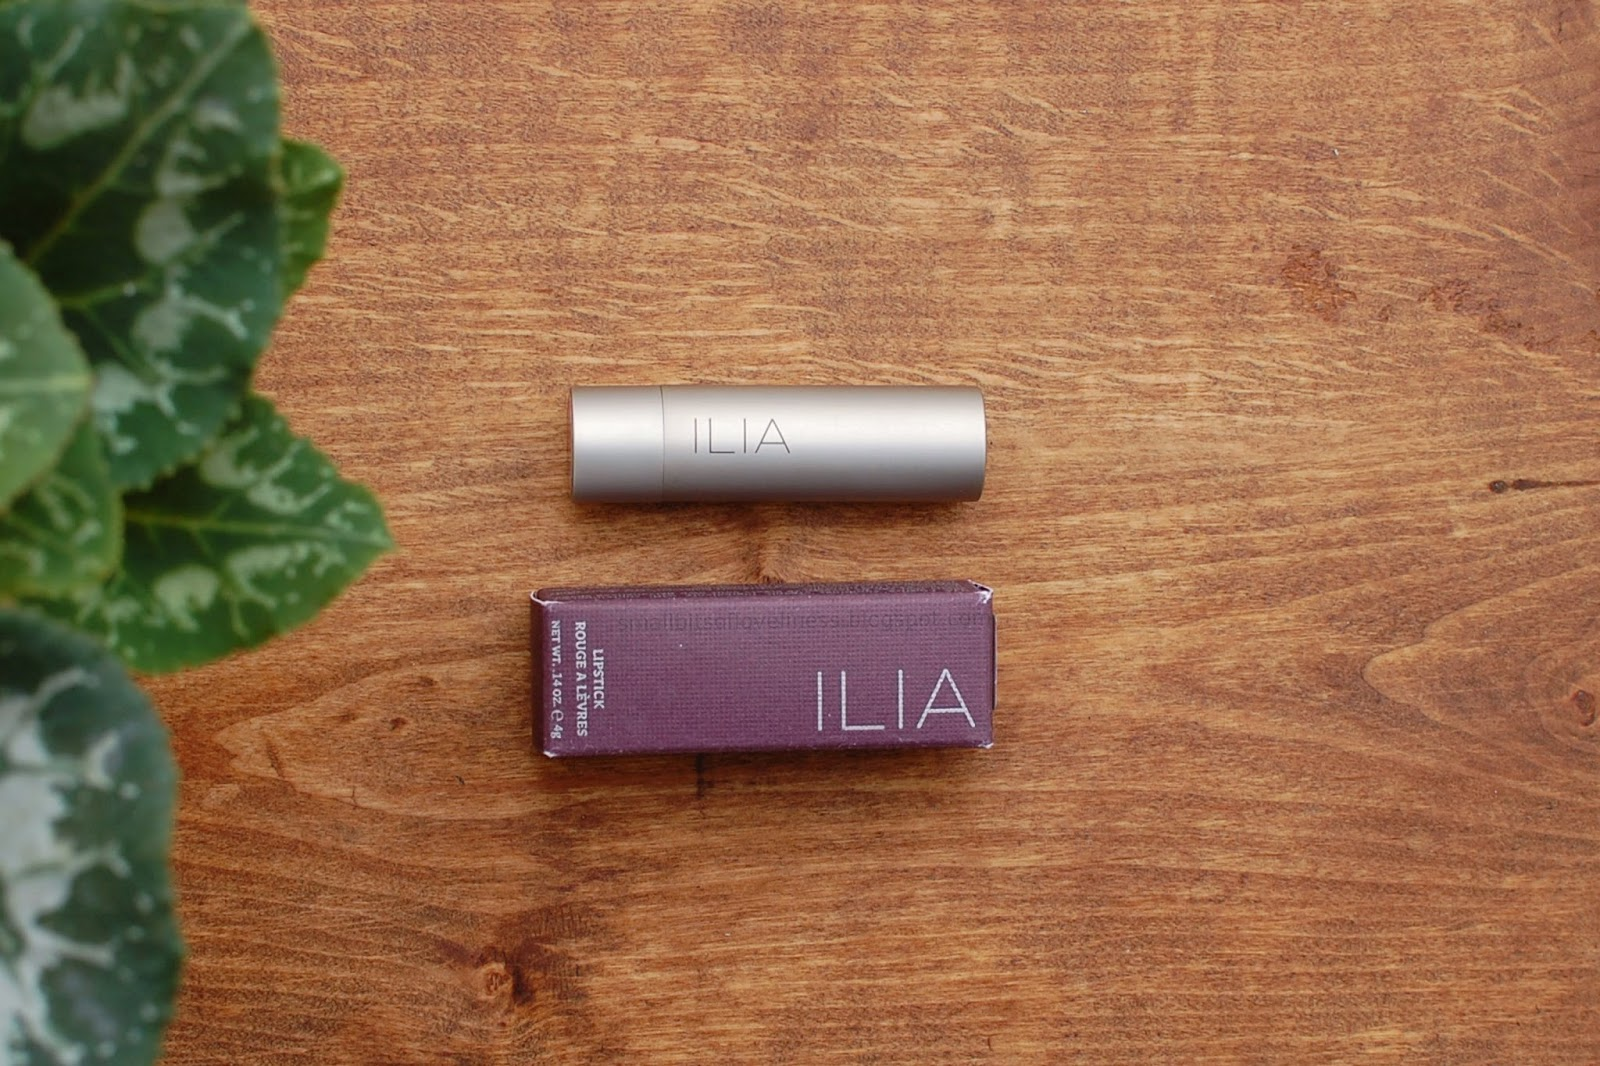 Ilia Beauty Lipstick, Natural & Organic